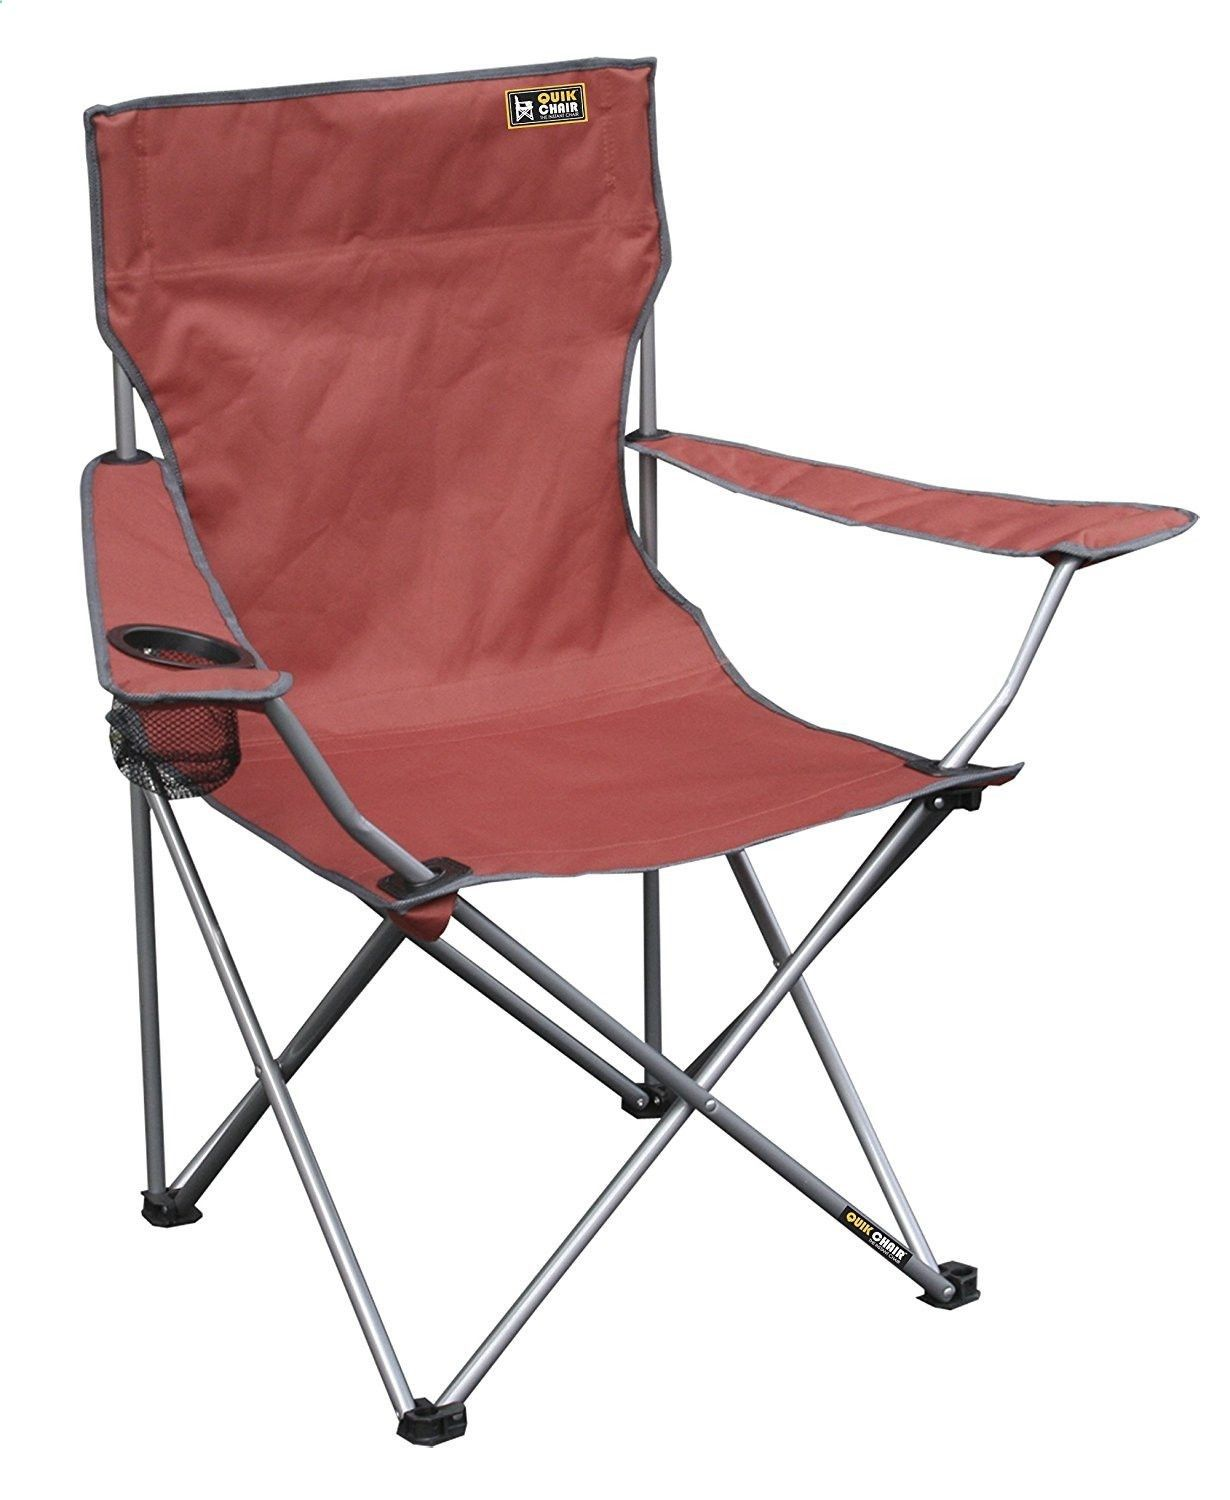 Best Folding Quad Chair Pottery Barn Kids Cover Camping Chairs Merica Red Camp